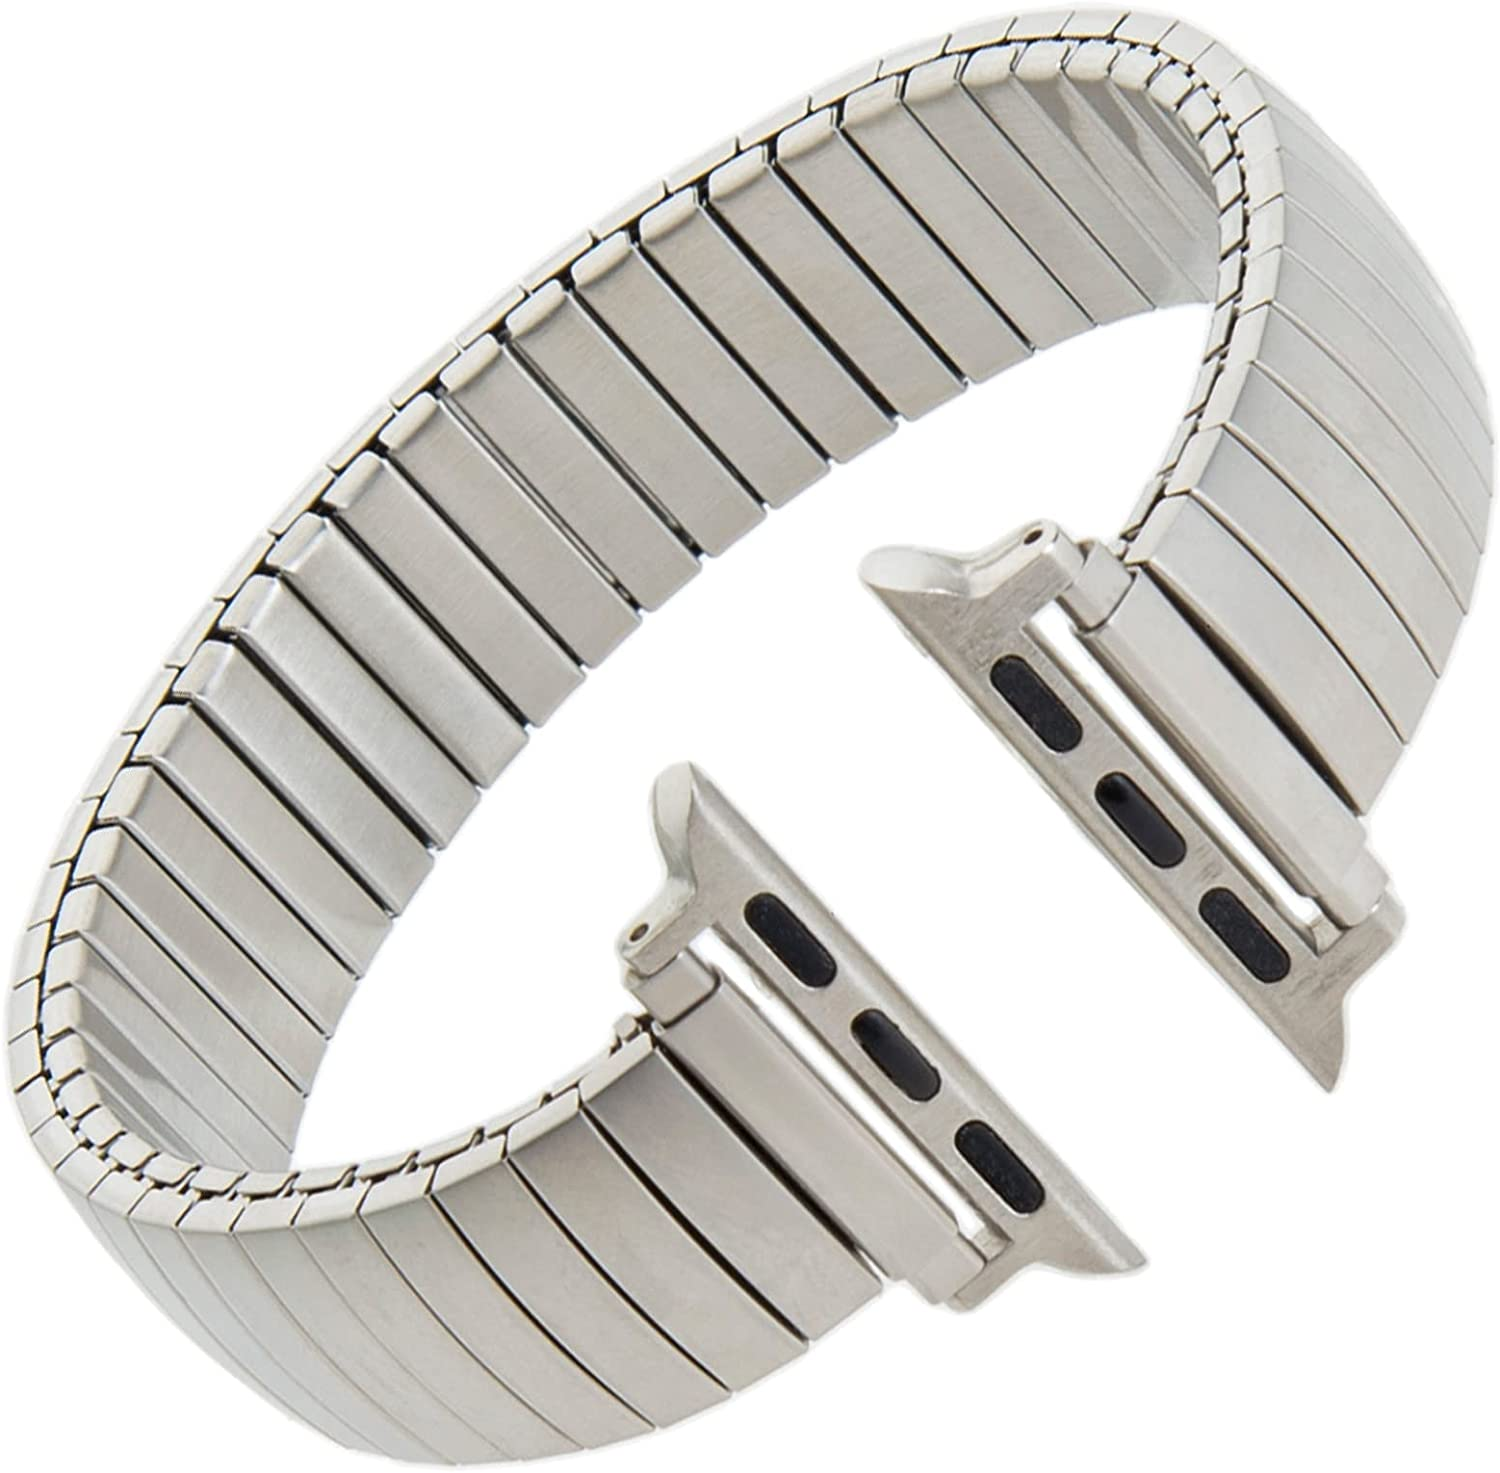 Gilden Expansion Extra-Long Matte Stainless Steel Smart Watch Band 500-SL-SMART, fits Apple Apple Watch in sizes 38mm/40mm